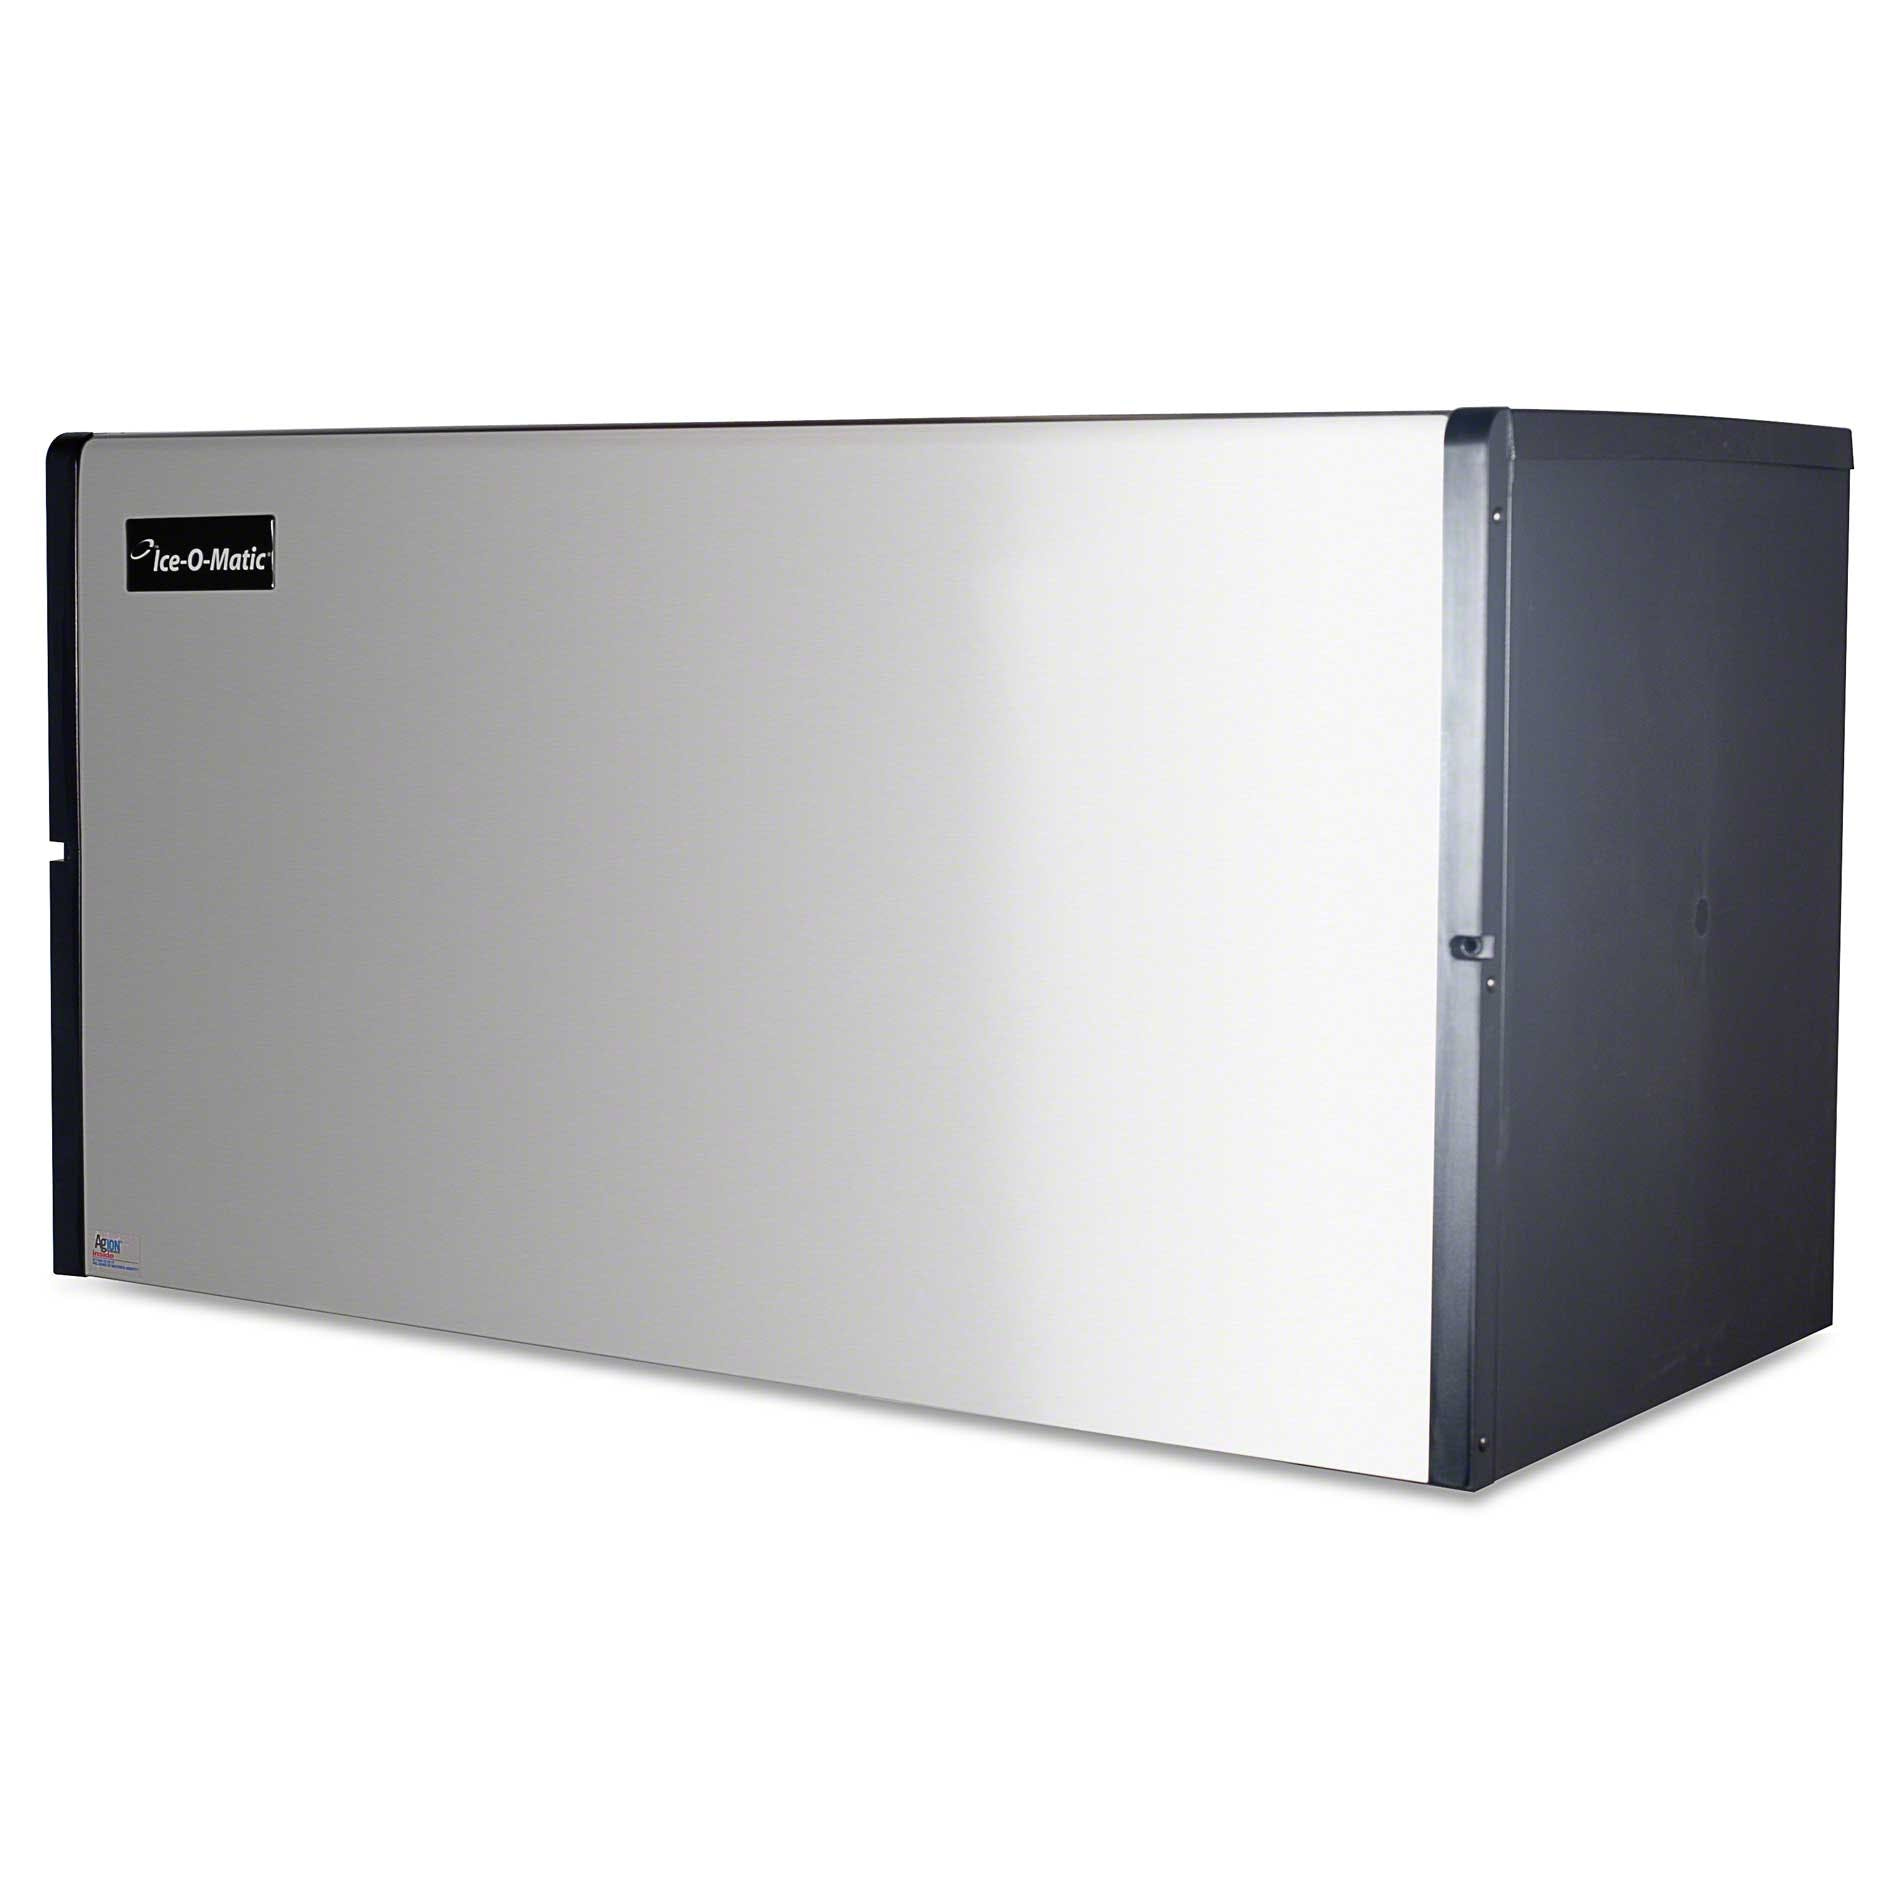 Ice-O-Matic - ICE1406HW 1386 lb Half Cube Ice Machine - sold by Food Service Warehouse